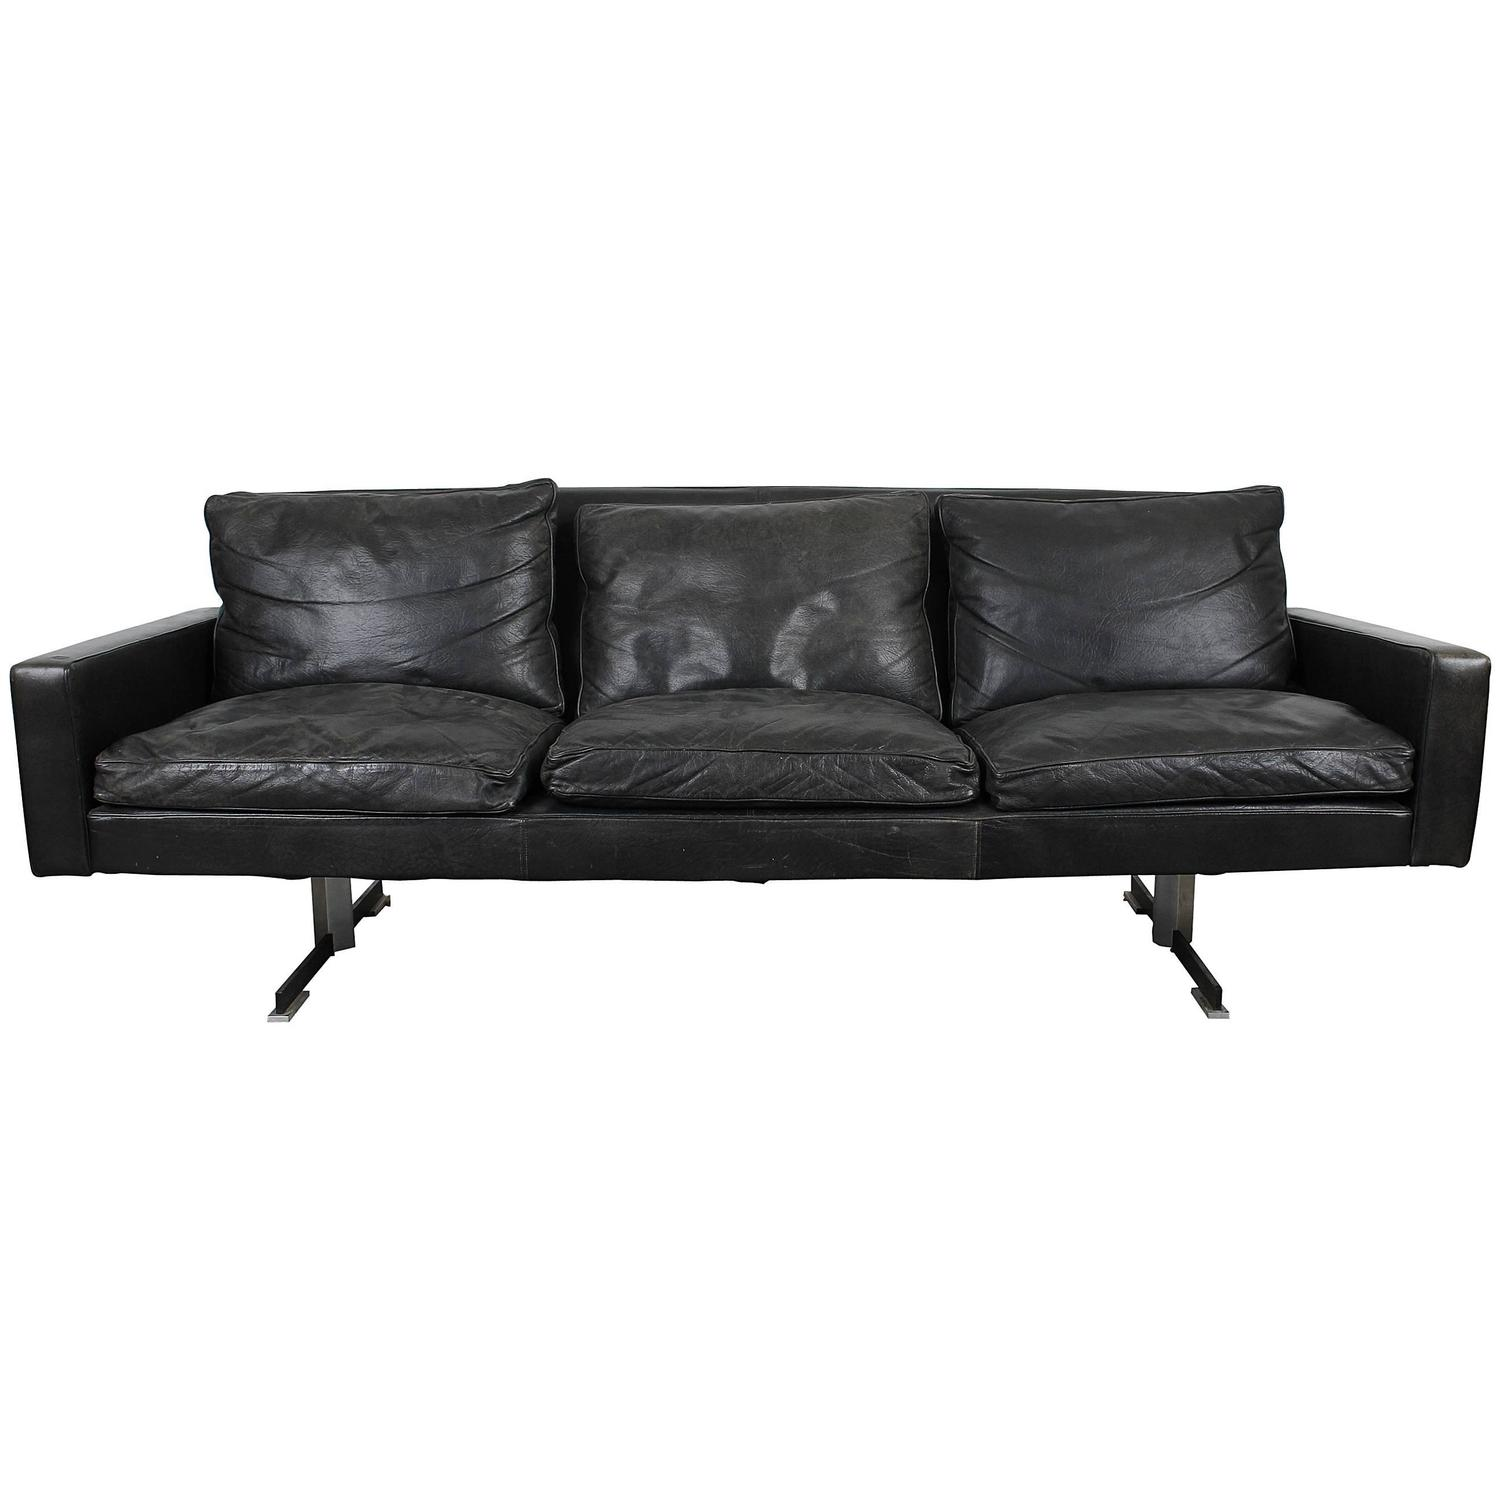 Mid century modern black leather sofa with chrome legs for for Mid century modern leather chairs